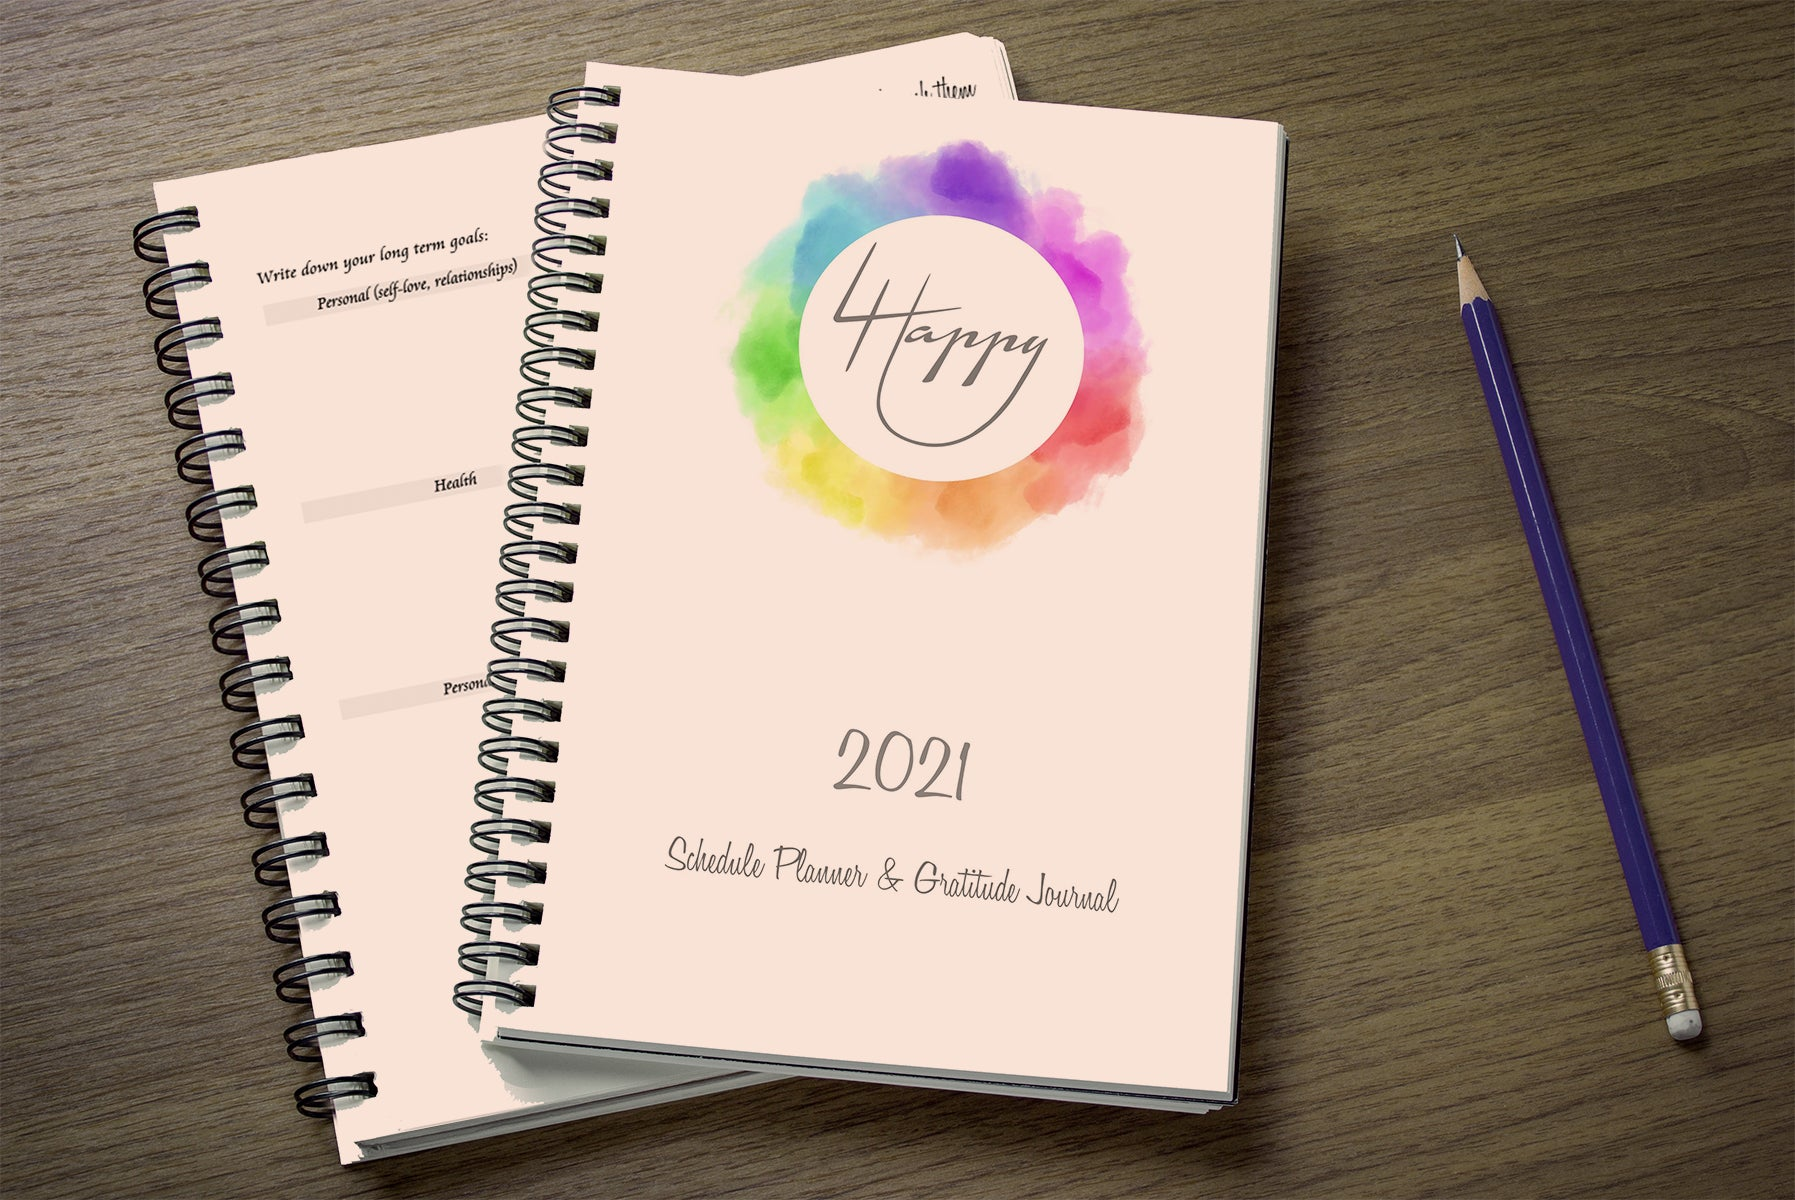 4 Happy U 2021 Yearly Weekly Happiness Schedule Planner & Gratitude Journal